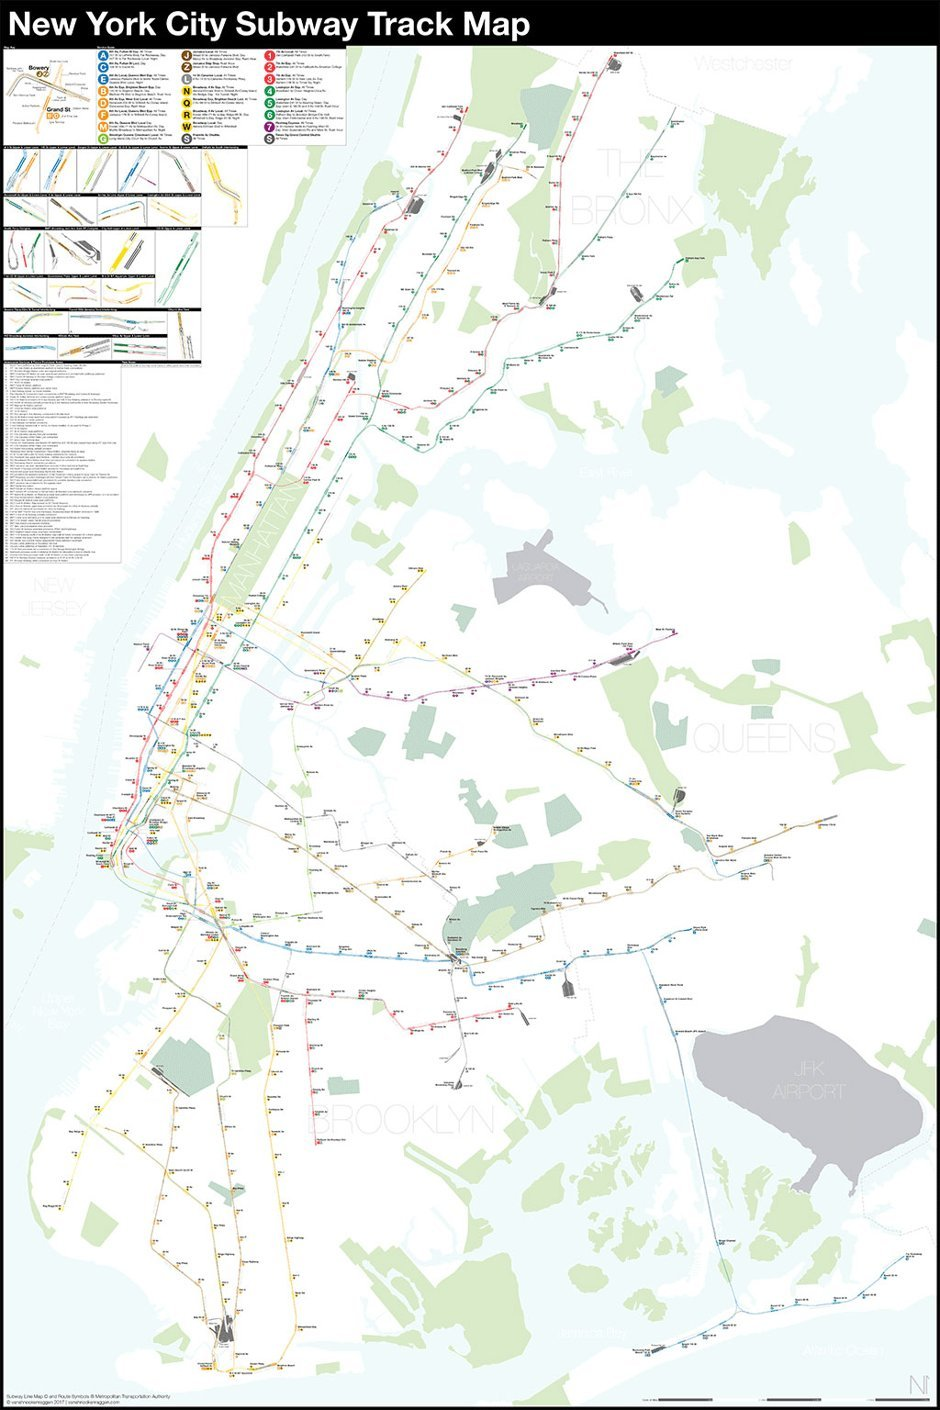 Geographically accurate NYC Subway map